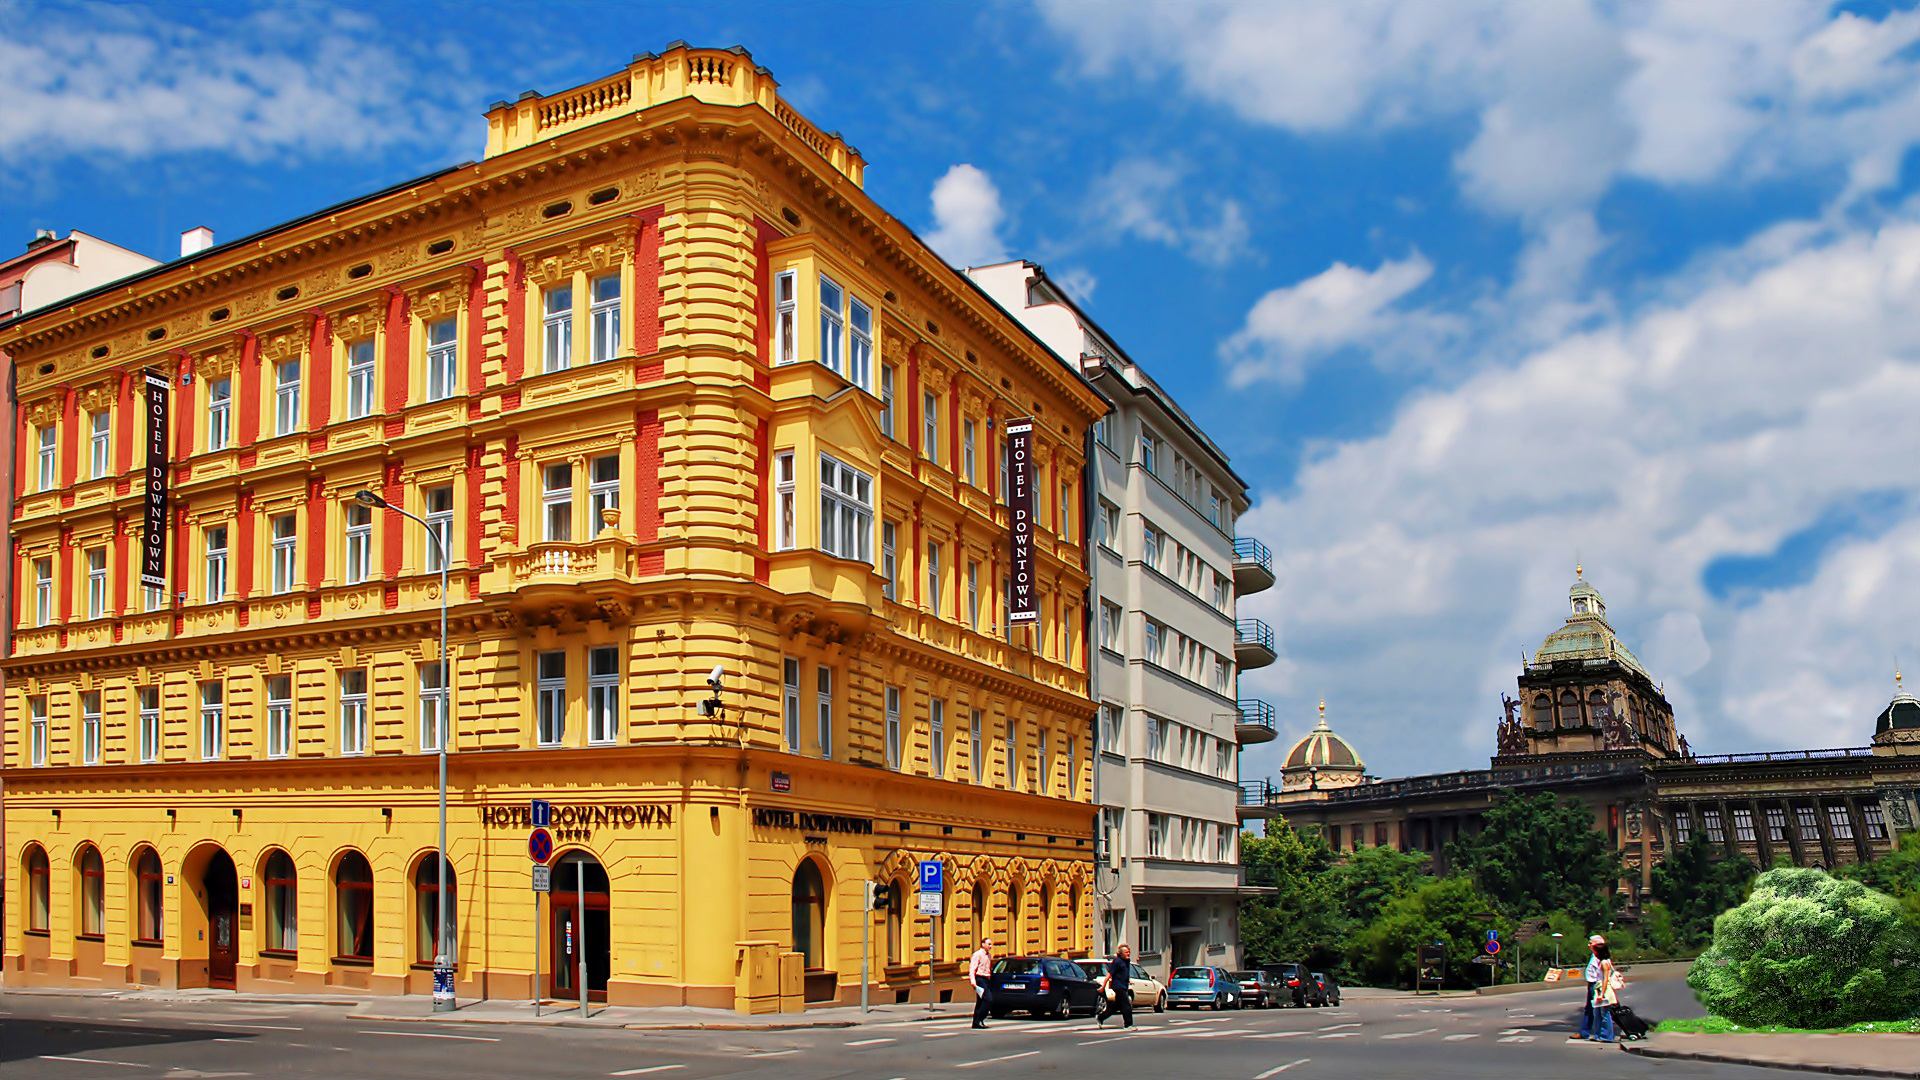 Ea hotel downtown praha ofici ln str nky for M hotel prague